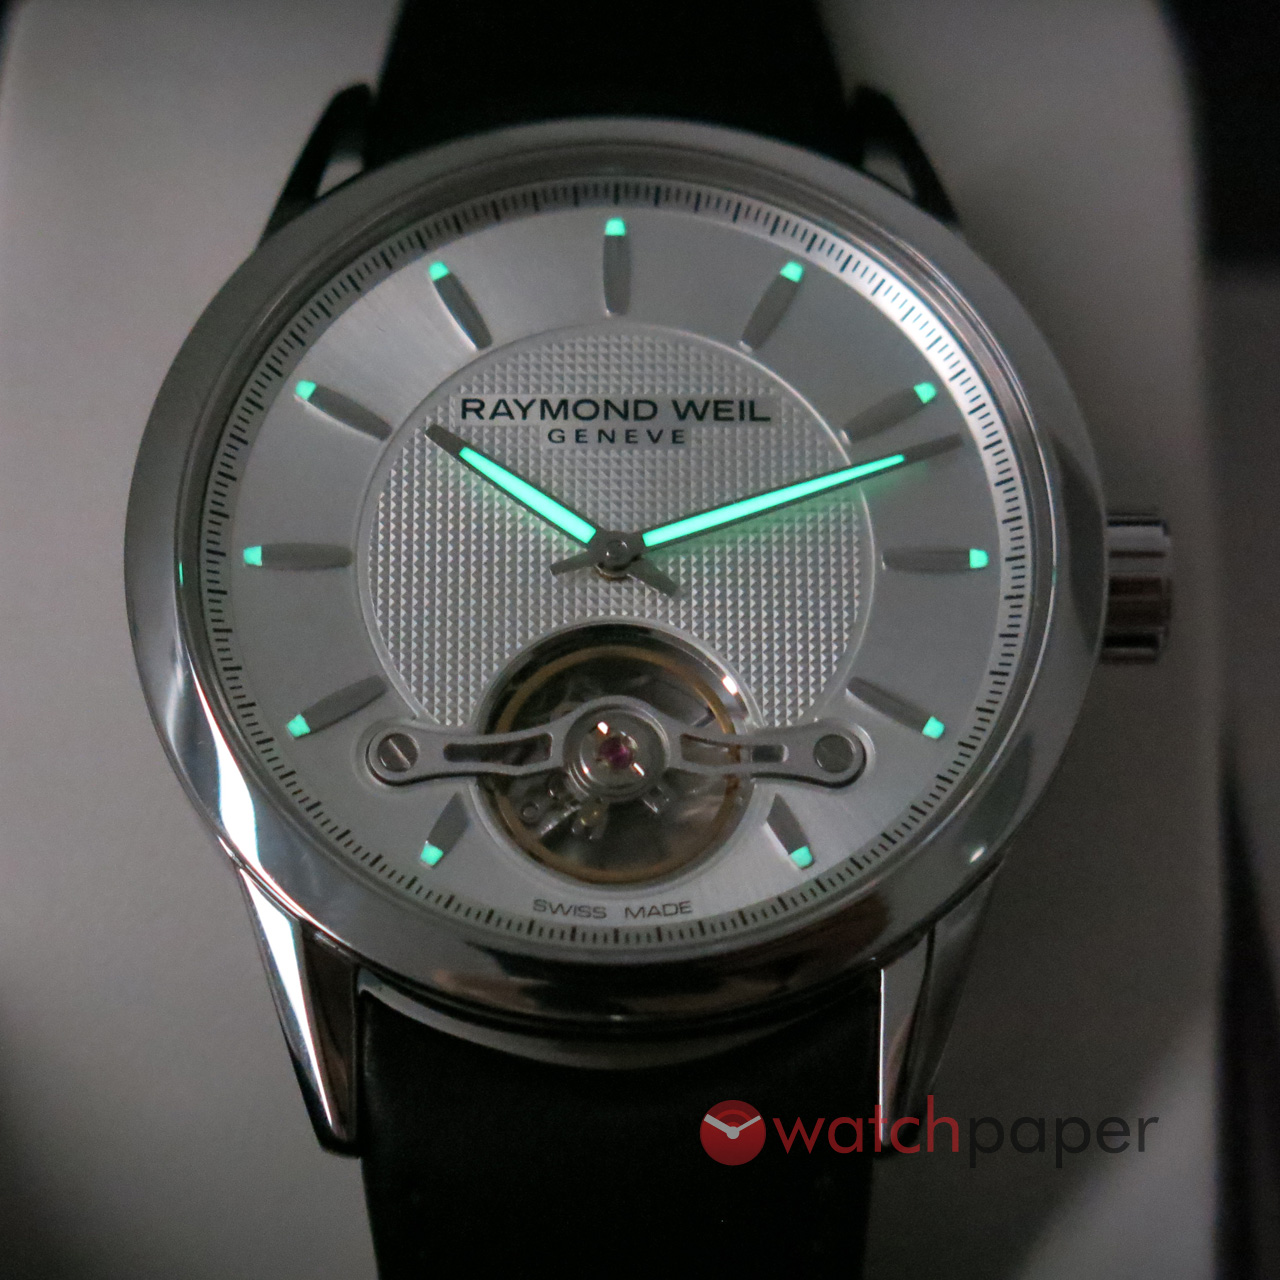 Raymond Weil Freelancer Rw1212 Hands On Review Watchpaper